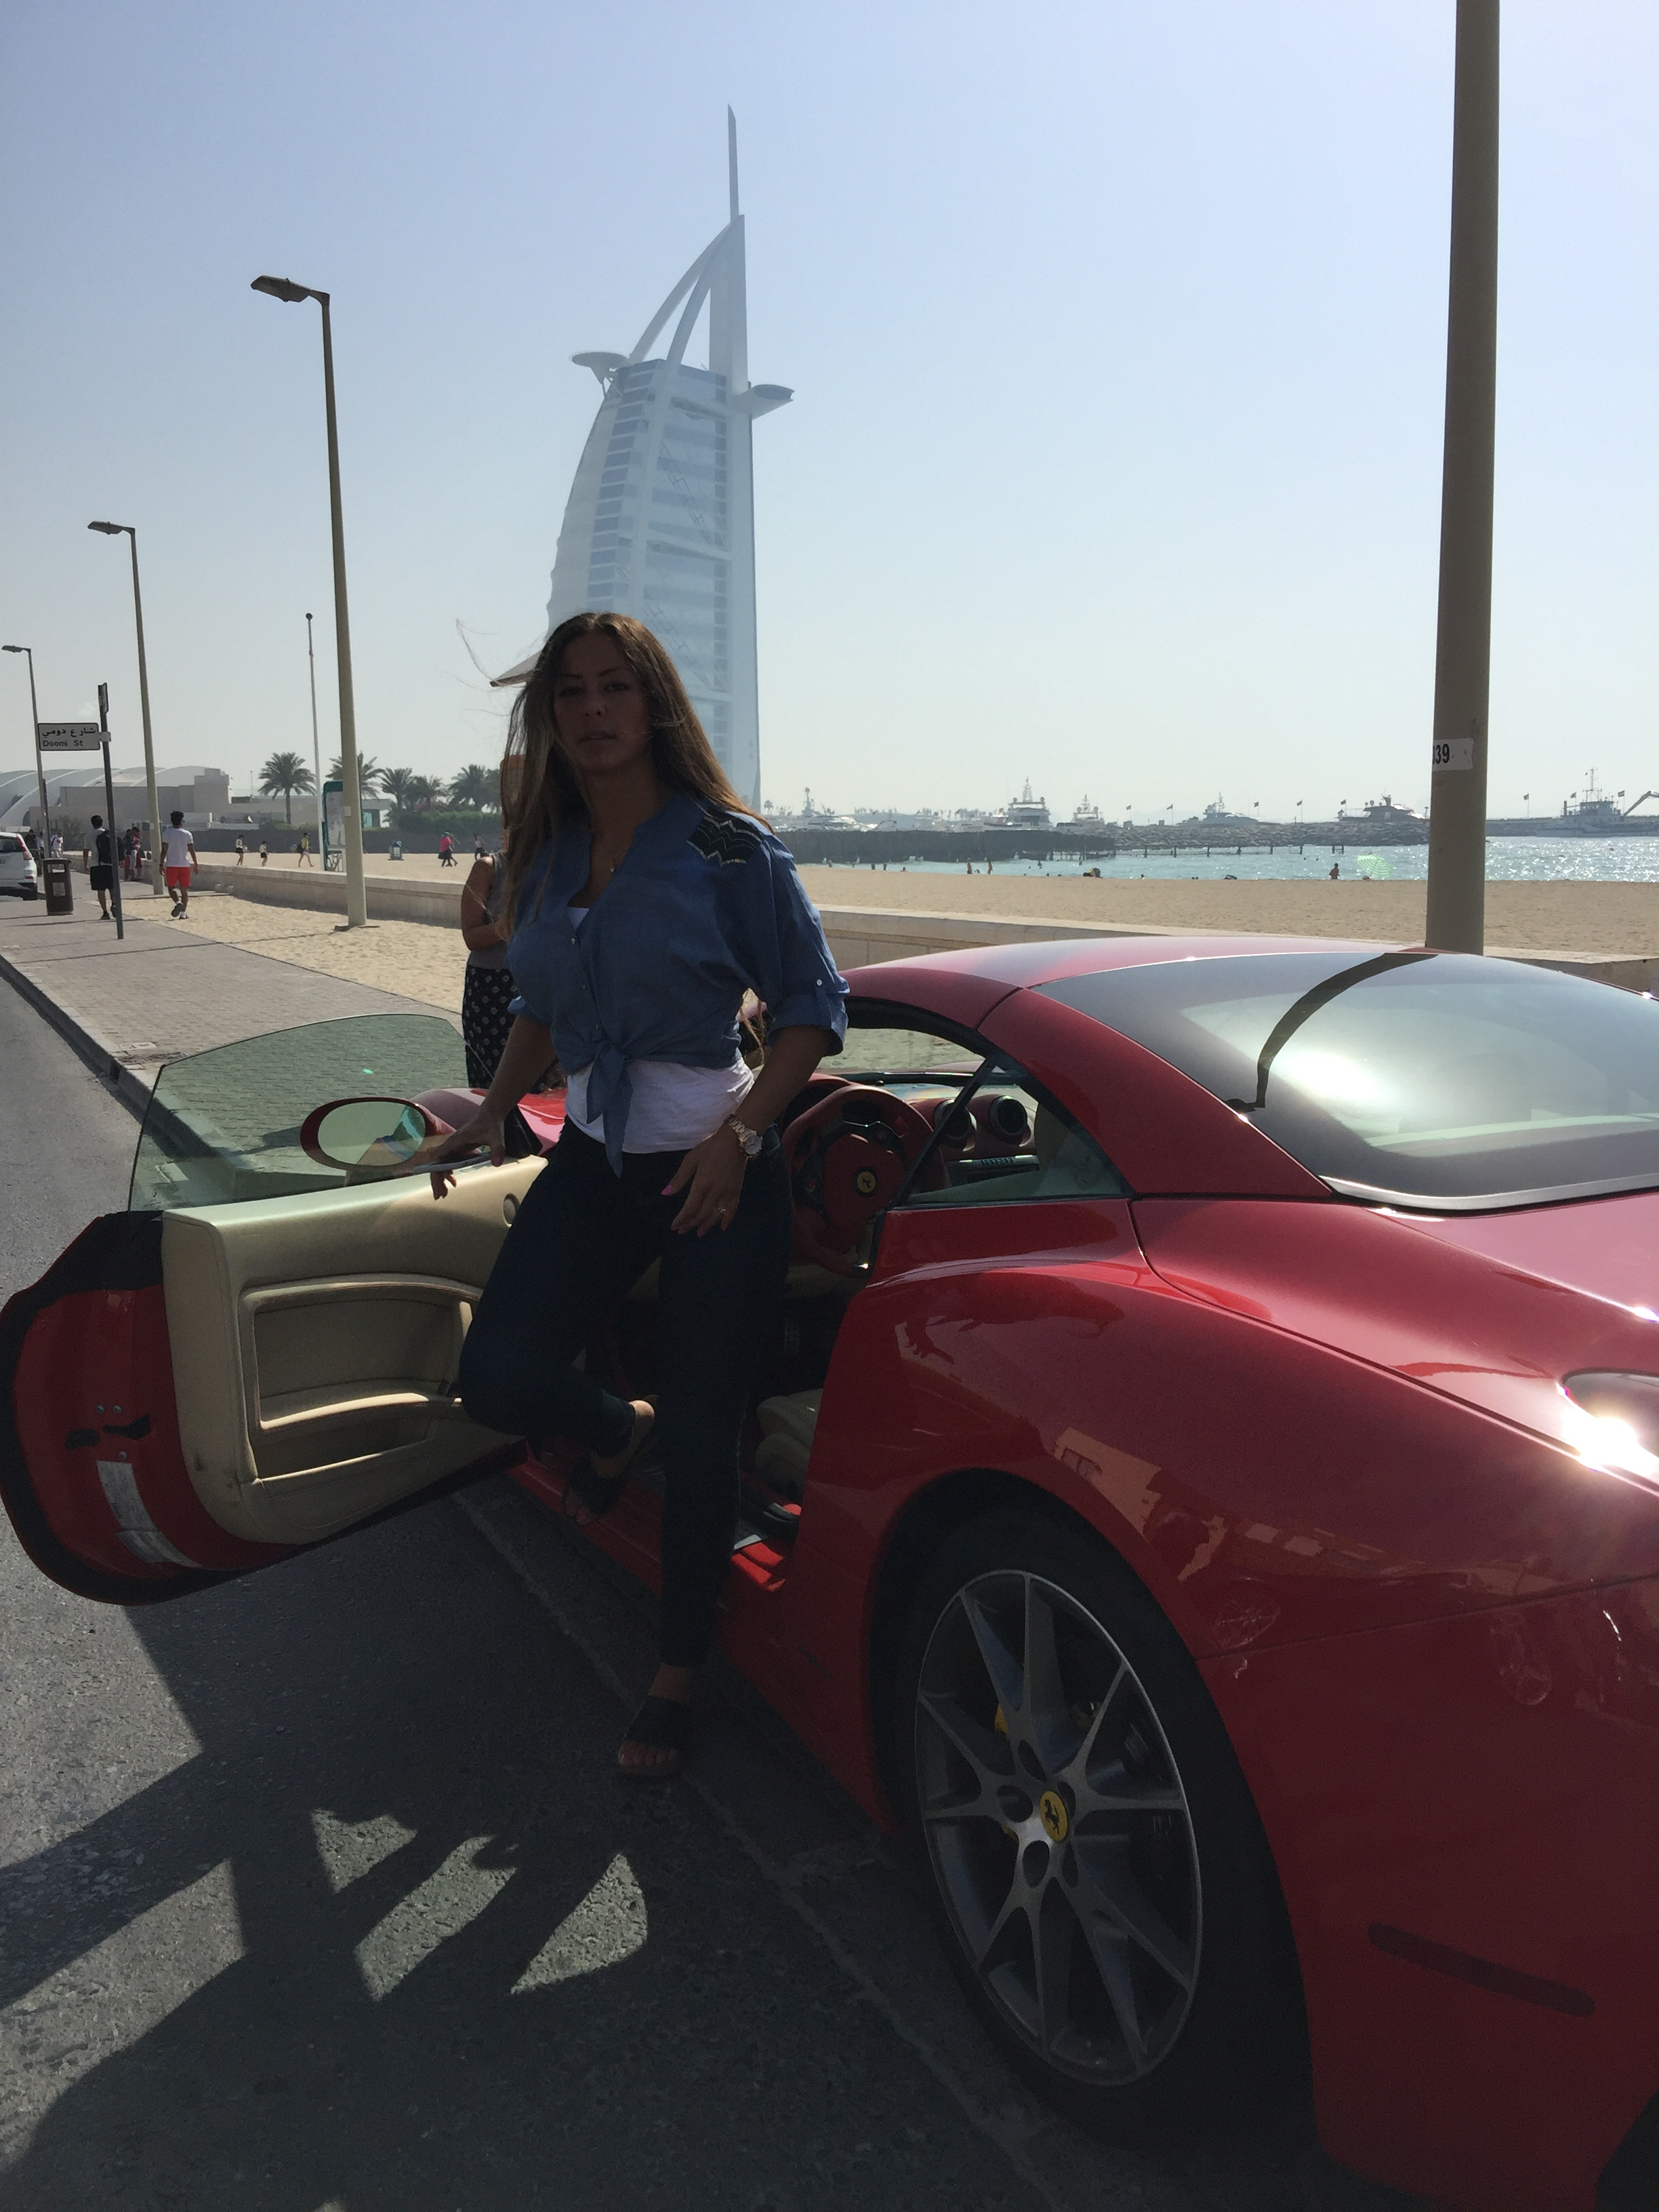 carla in her ferrari dubai burj khalifa room travel blogger influencer vlogger carla maria bruno advantures.jpg